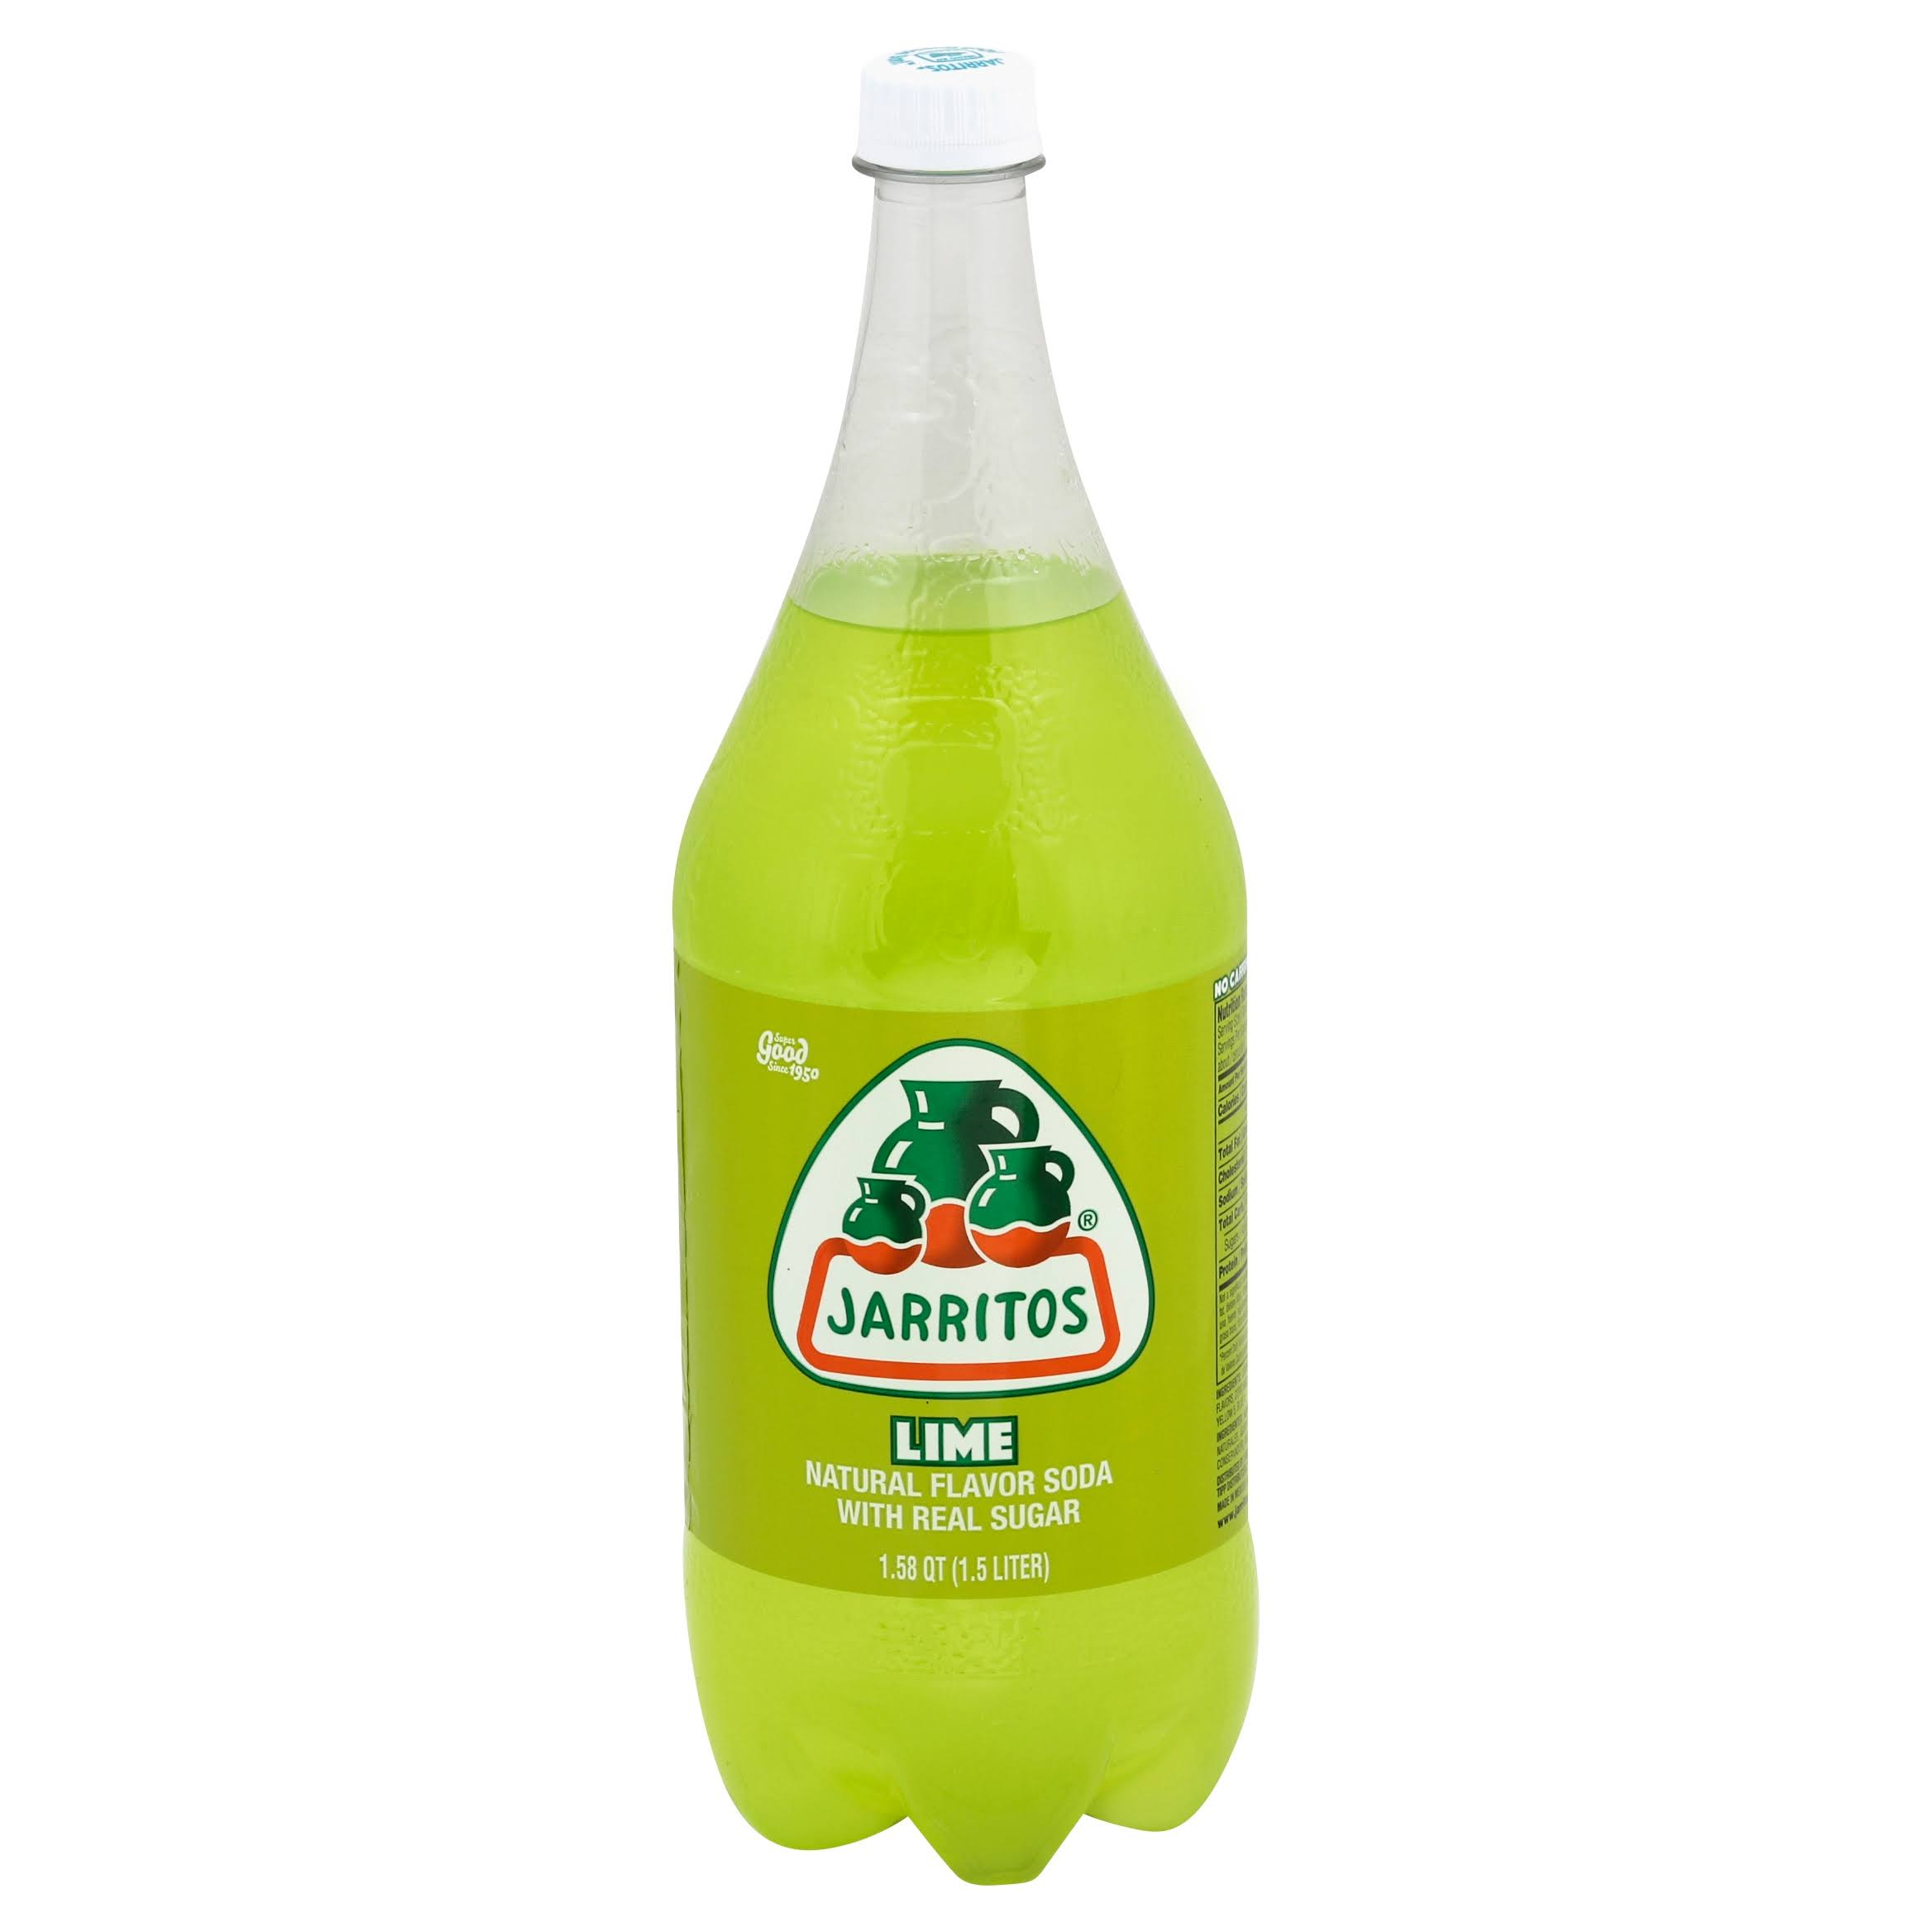 Jarritos Lime Soda - 1.5L